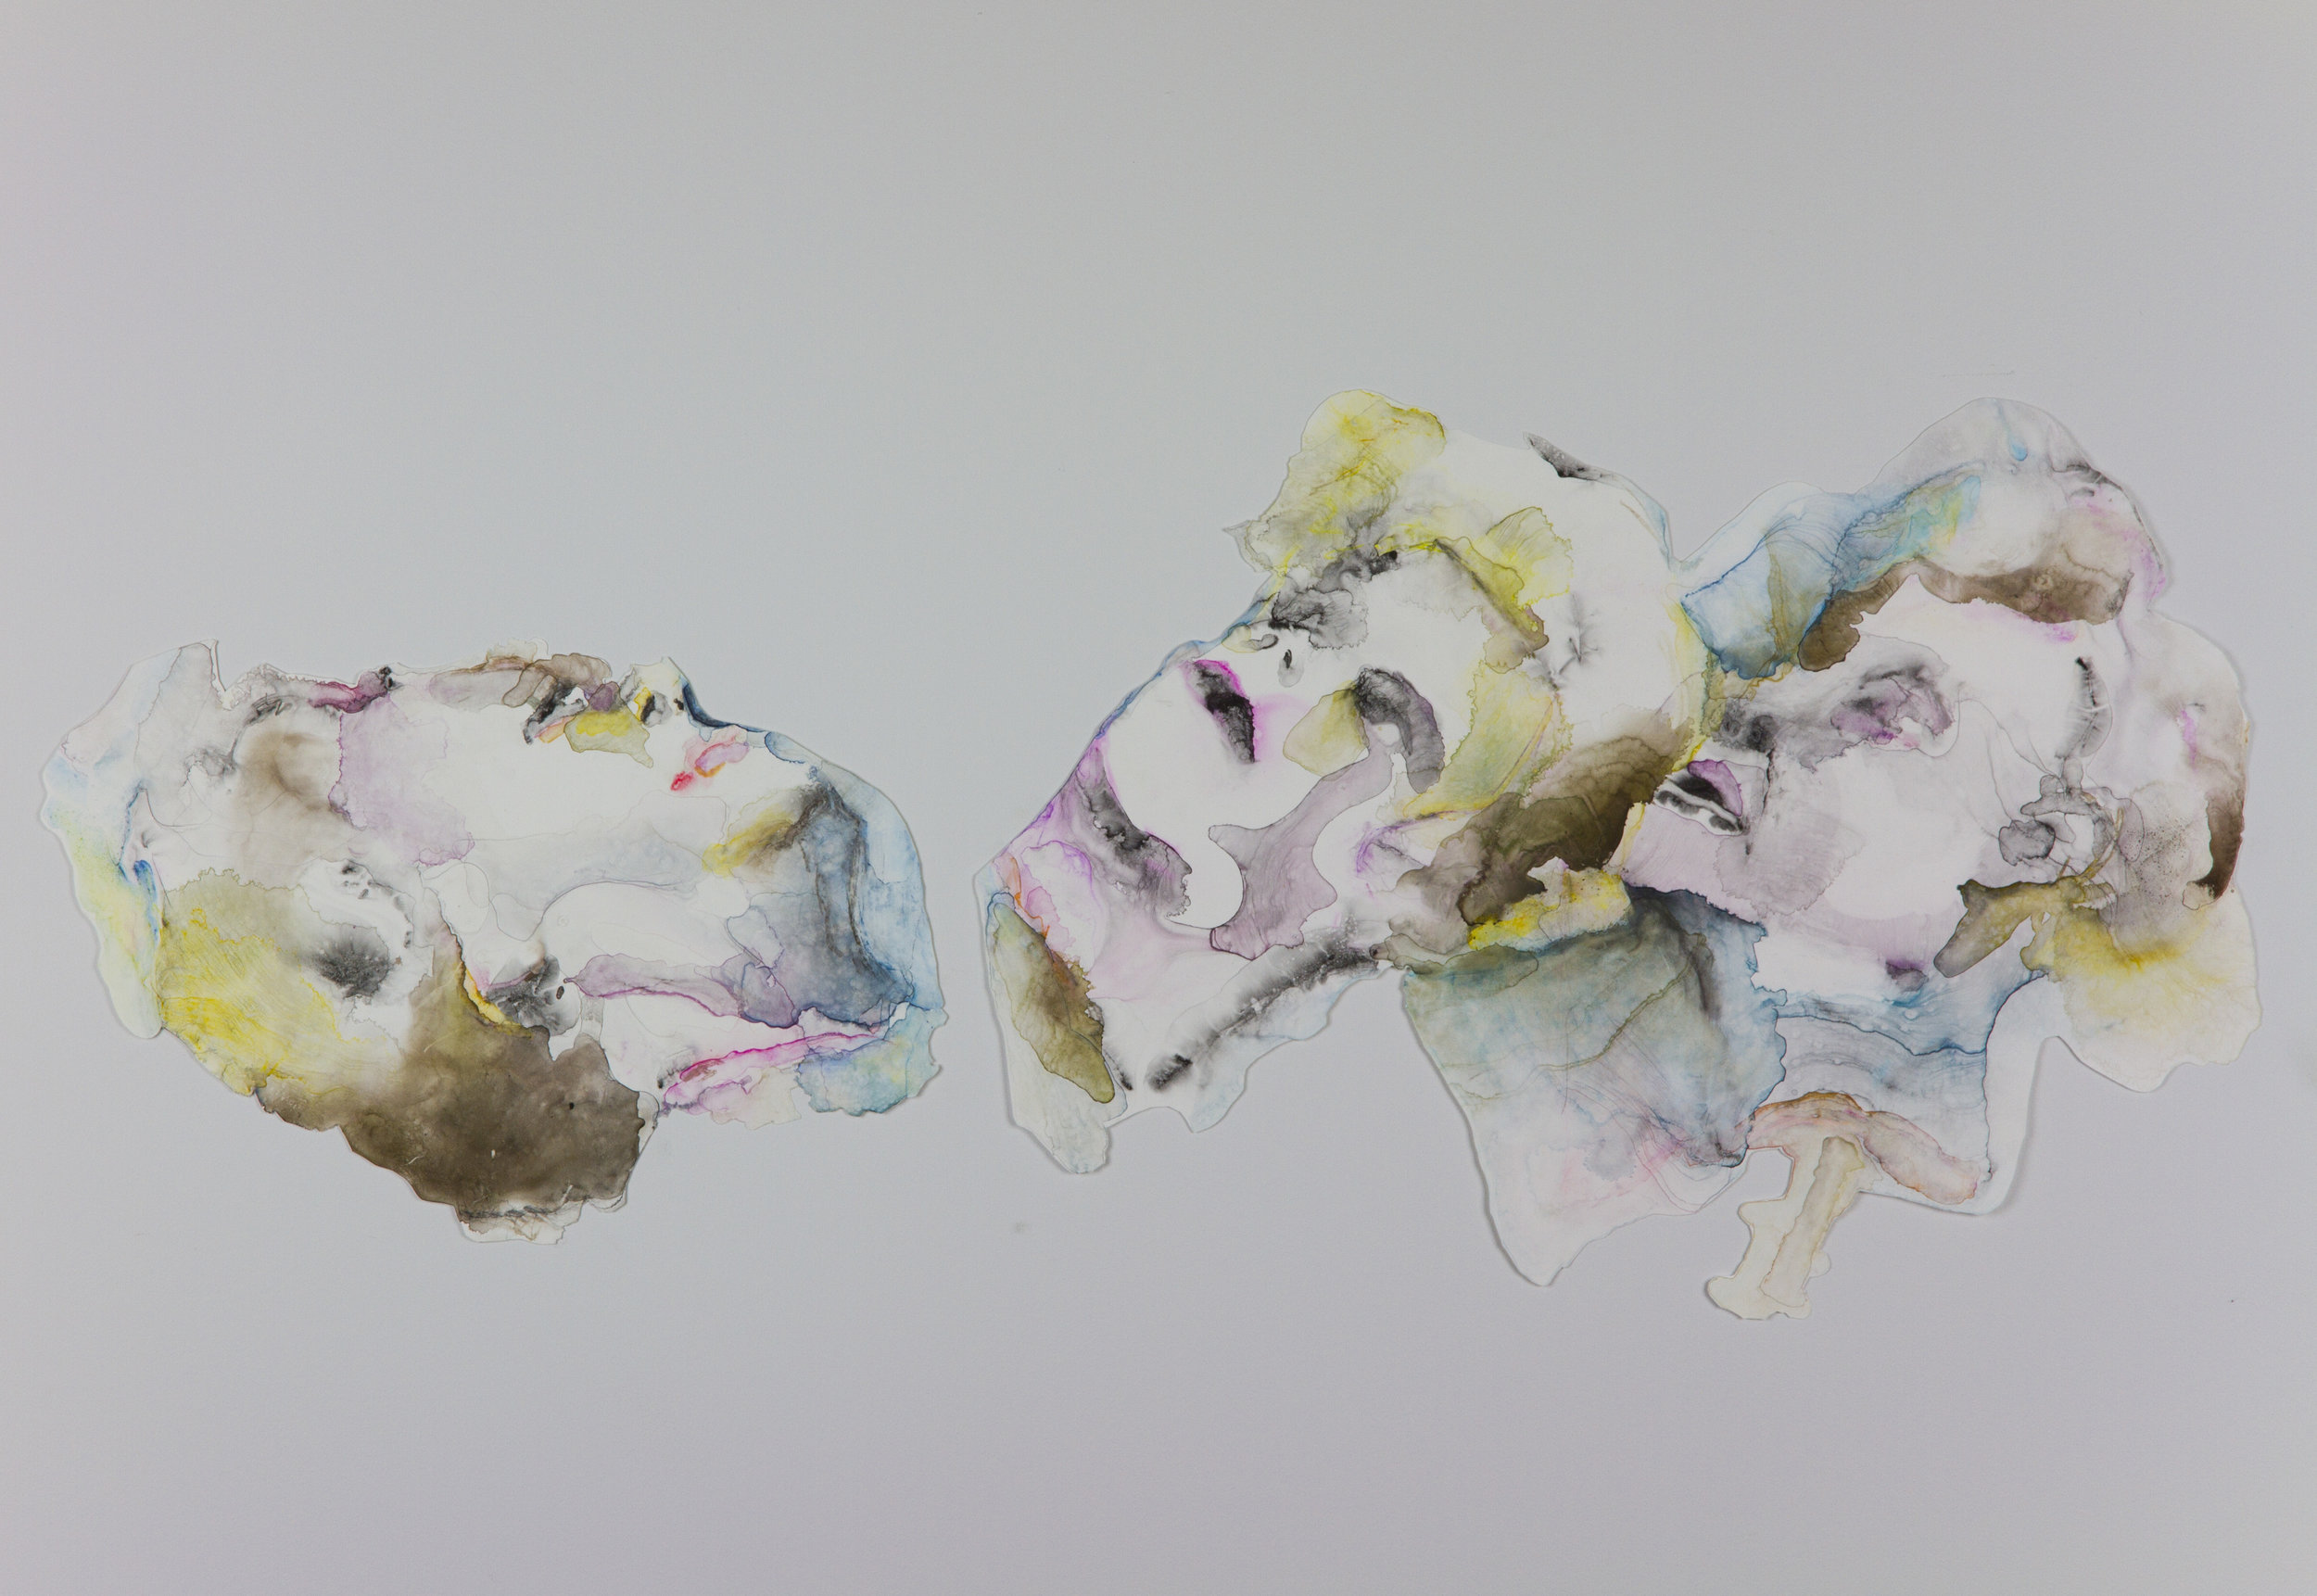 Soothsayers, 2011, watercolor on polypropylene, sizes vary approximately 46x30 inches